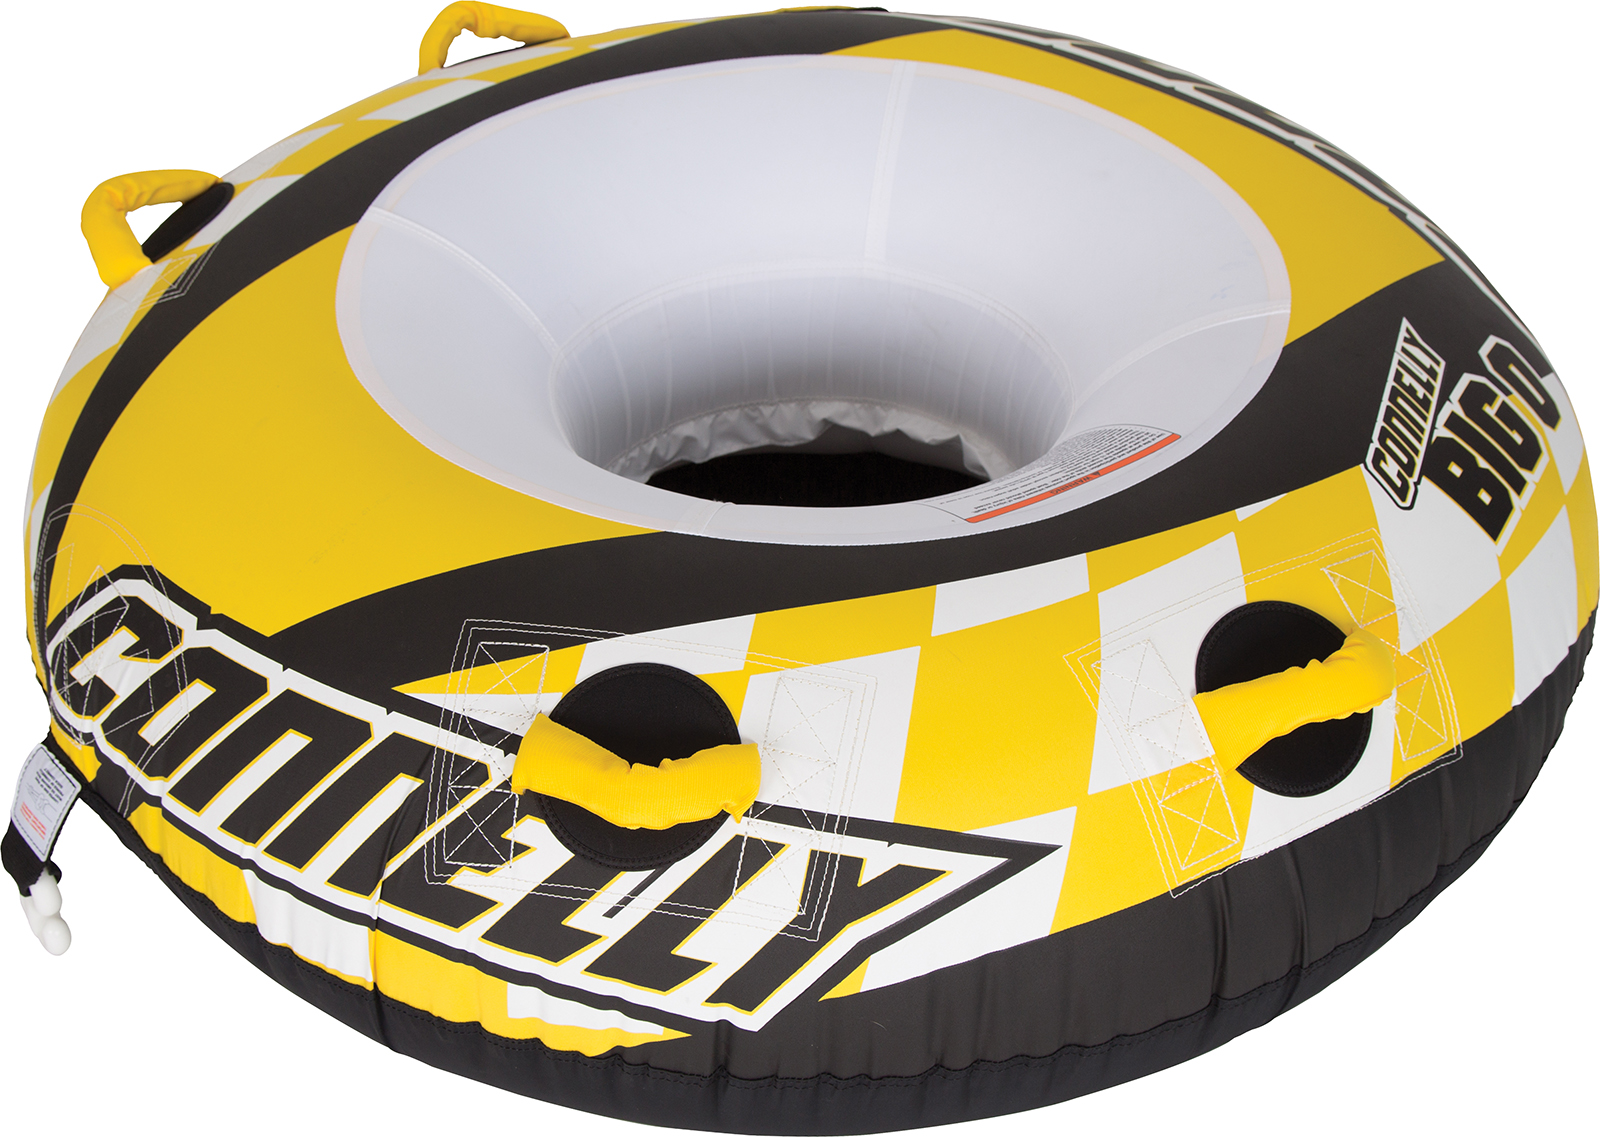 BIG O TOWABLE TUBE CONNELLY 2018